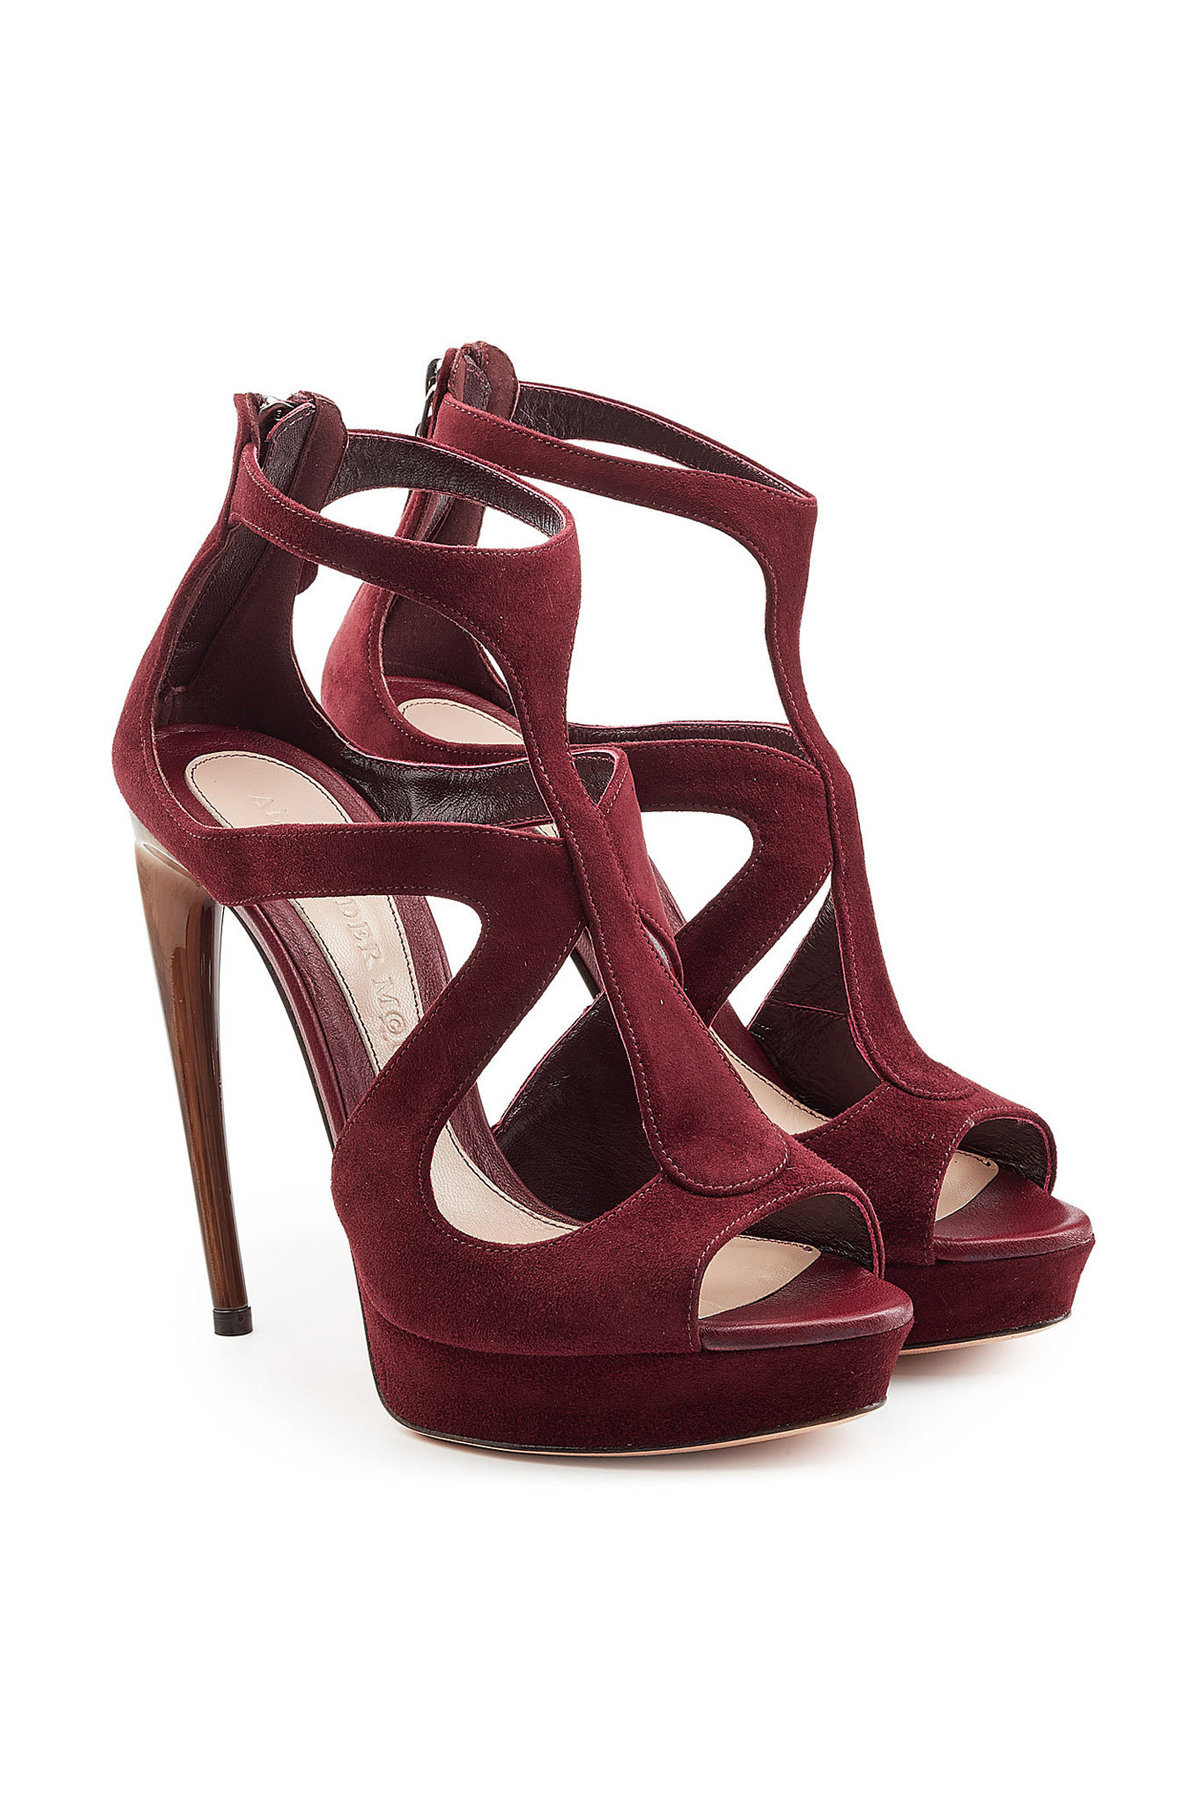 Alexander McQueen Satin Platform Sandals with Ruffle Trim Gr. IT 37